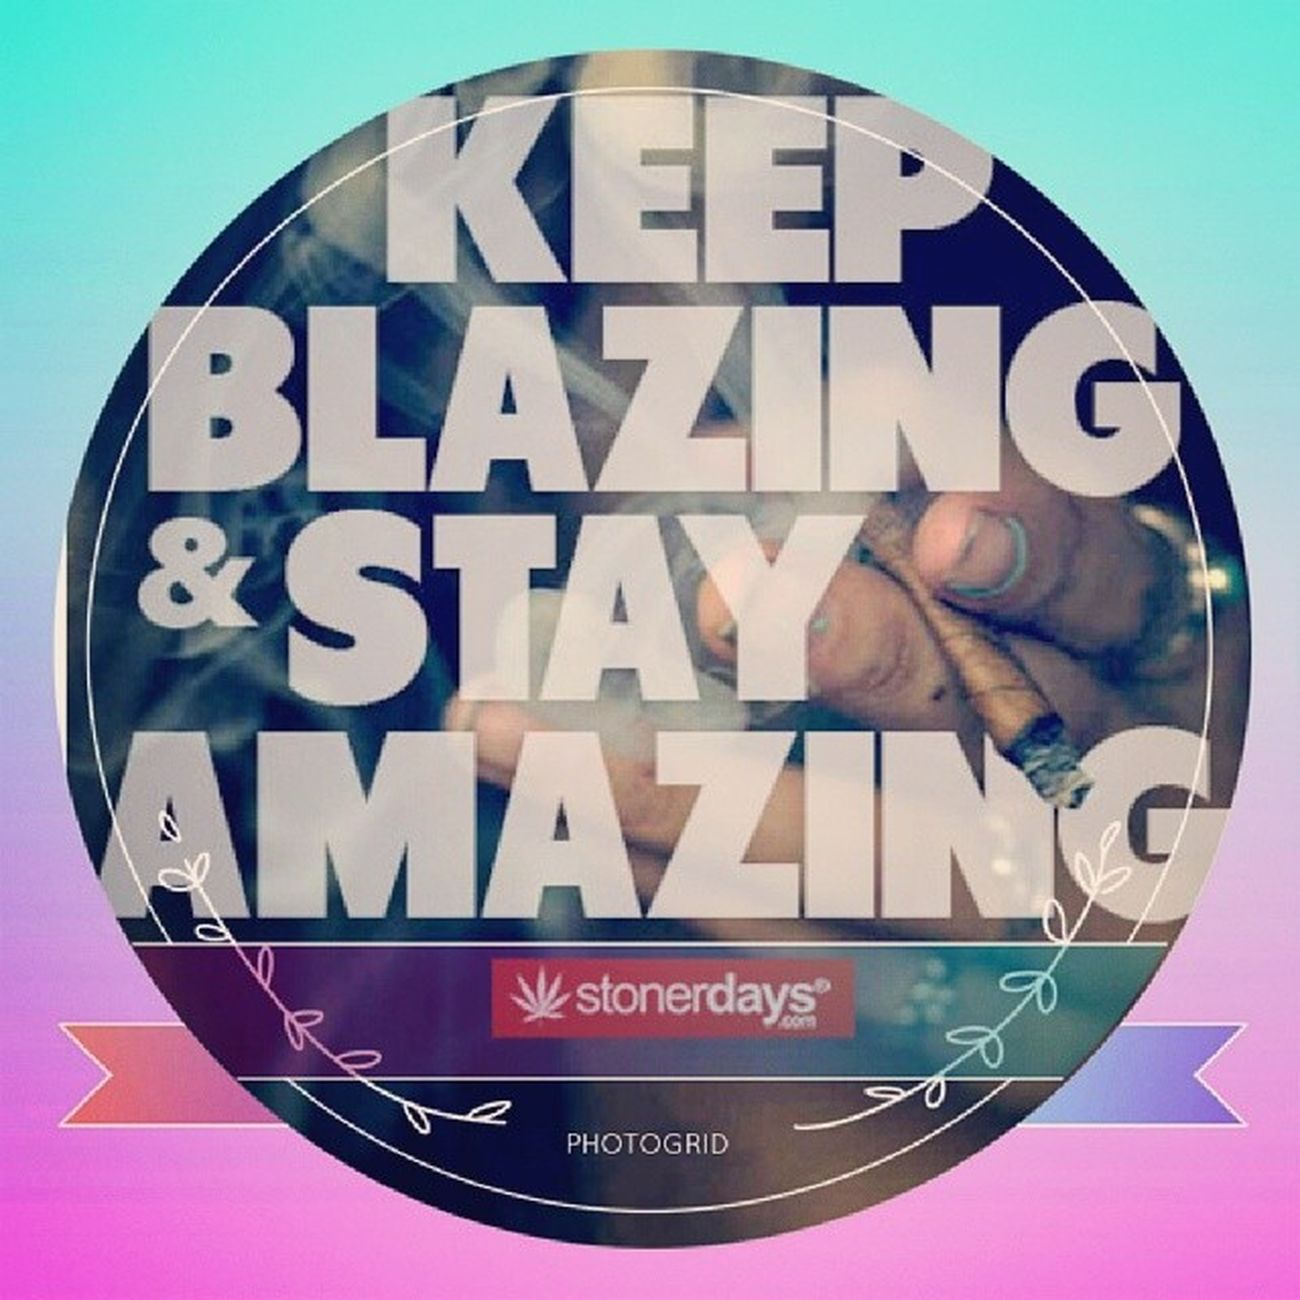 Keepblazing Stayamazing